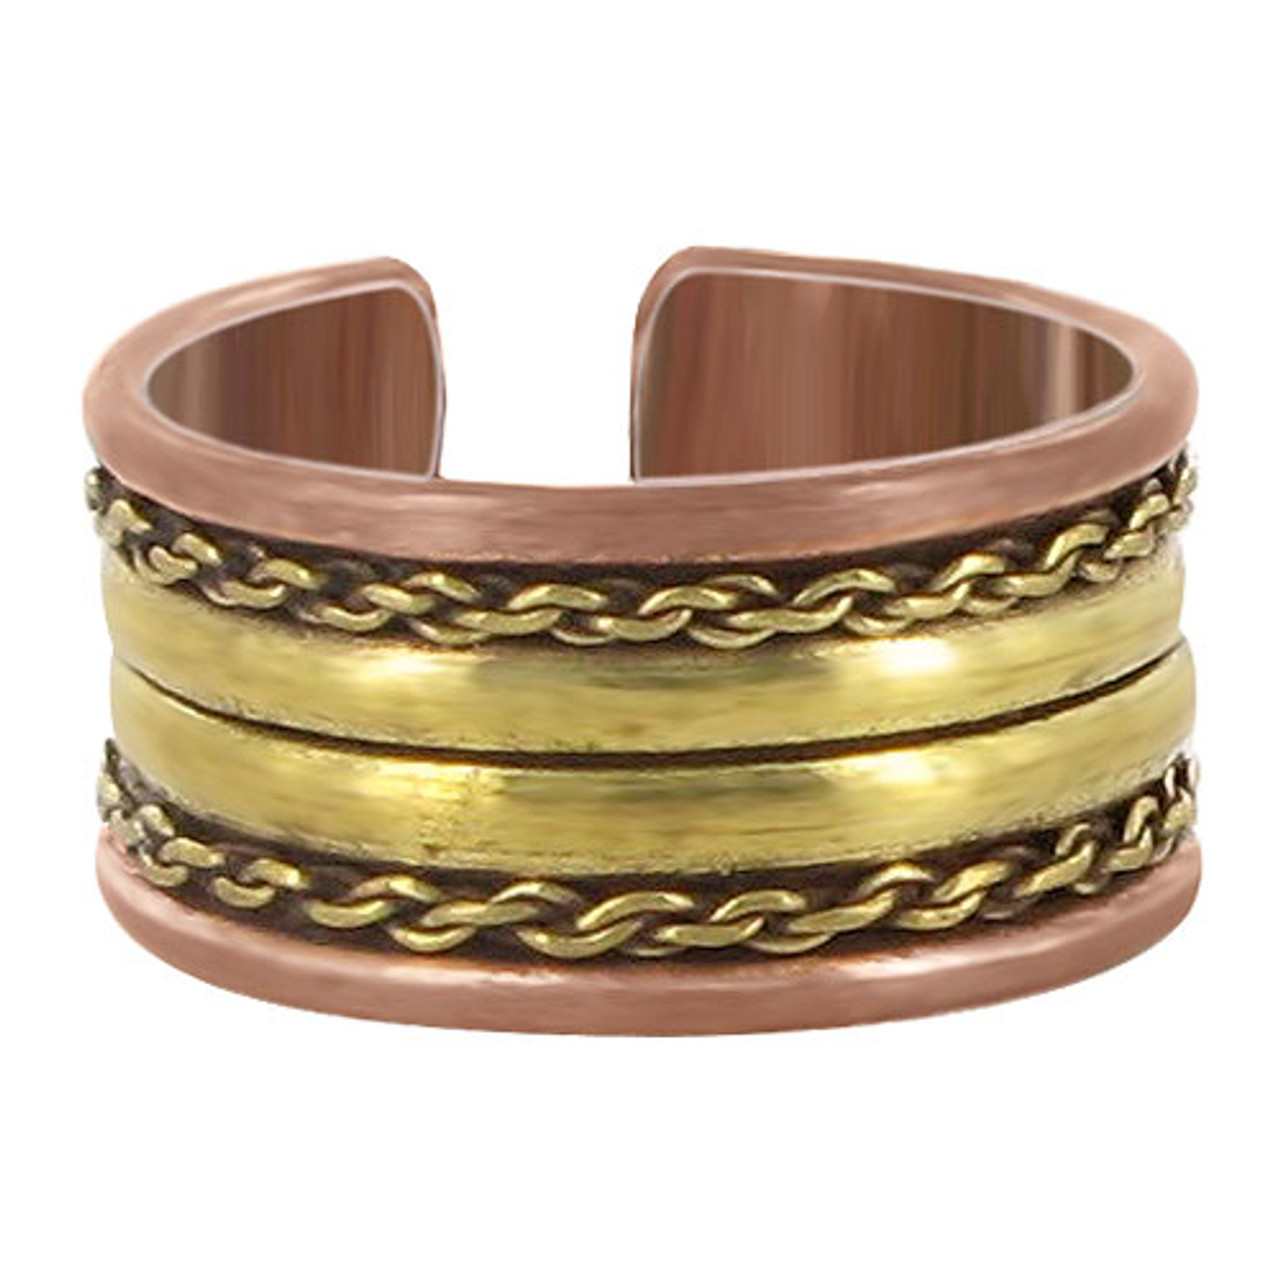 11mm wide Two Tone Finish Double Stripes Adjustable Ring